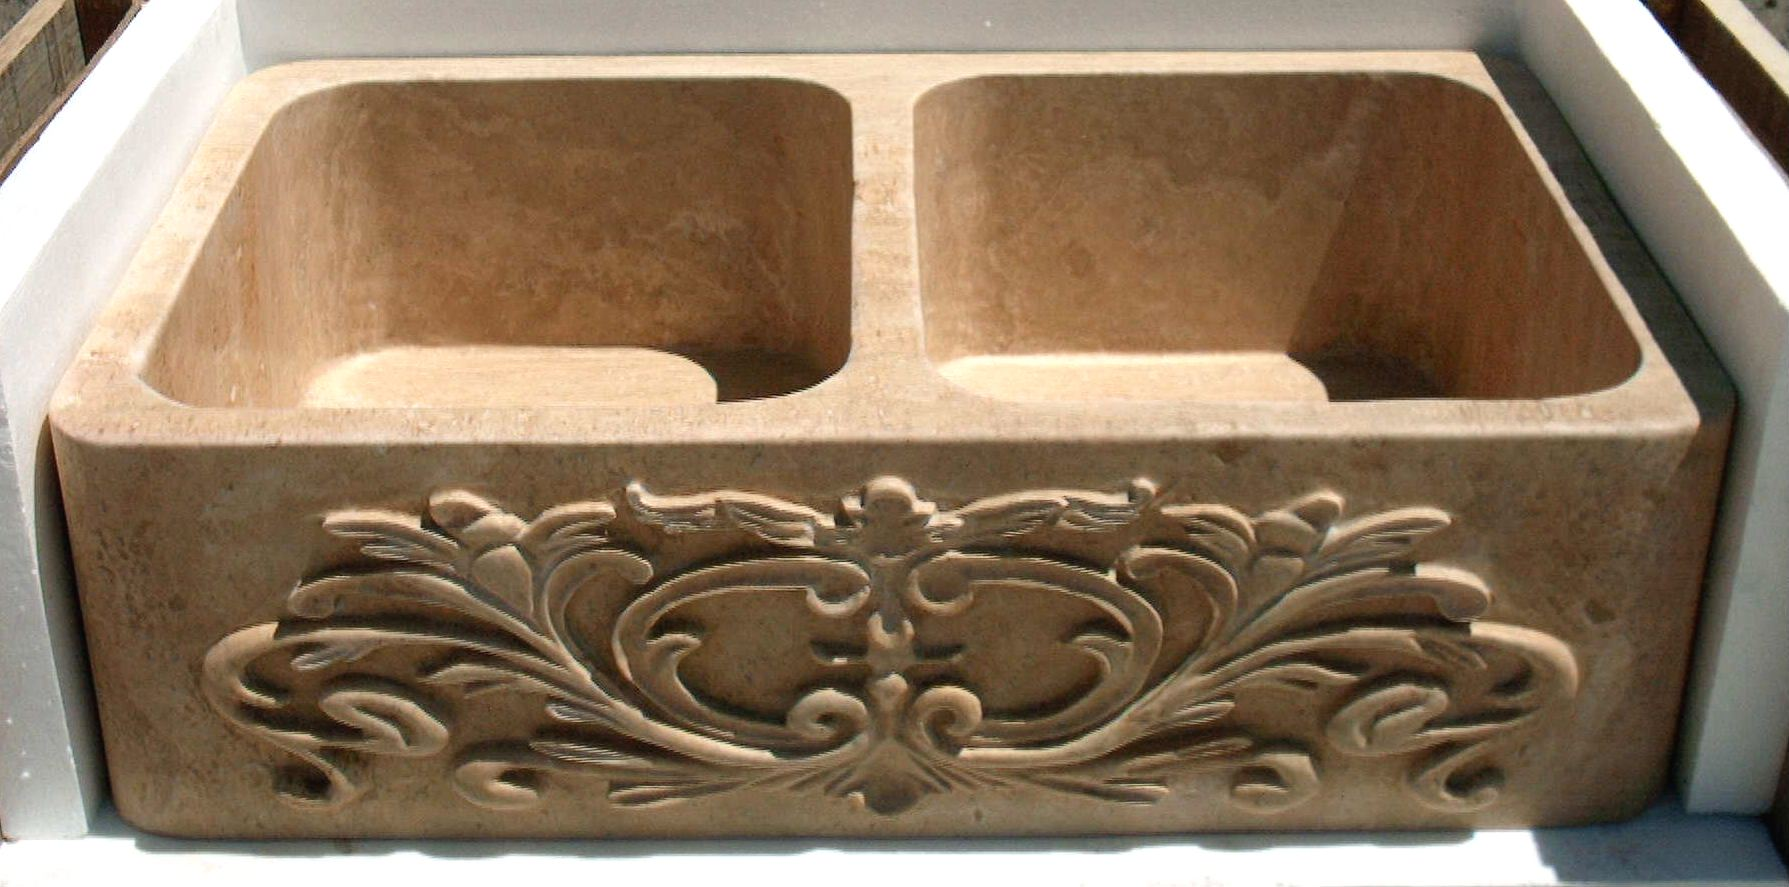 undermountstonekitchensinks undermount kitchen sinks Undermount or Drop In Kitchen Sink w Carved Front Apron available in travertine marble and onyx 36 Long starting at 00